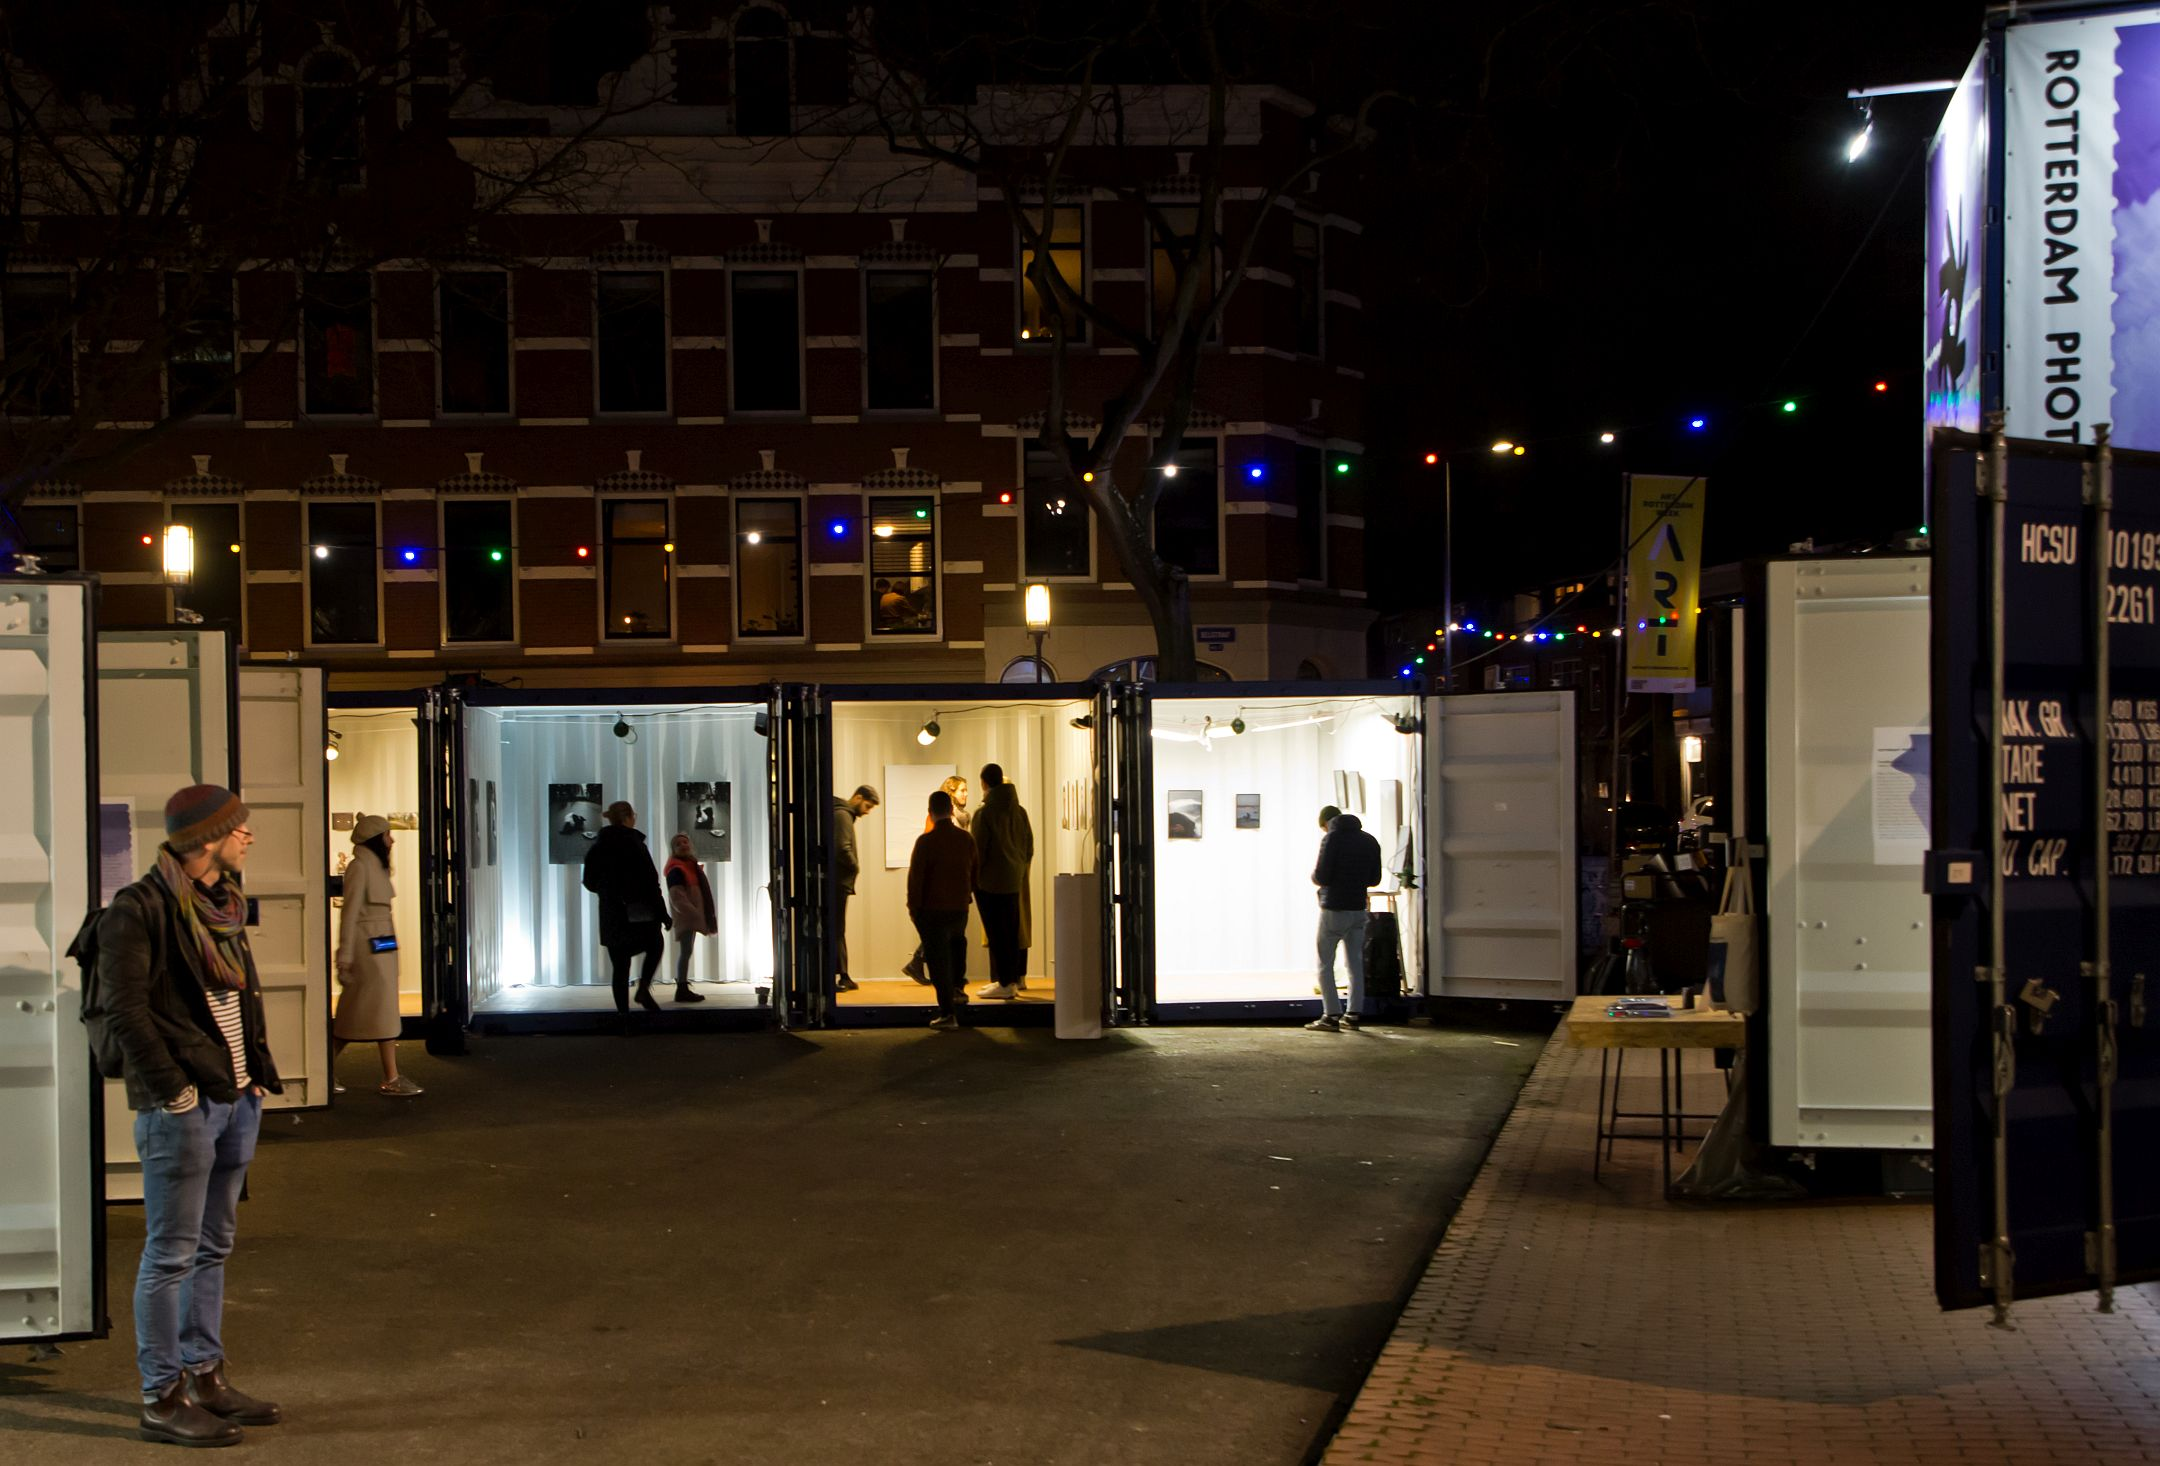 Rotterdam Photo Festival 2020 at Deliplein in the Katendrecht district.